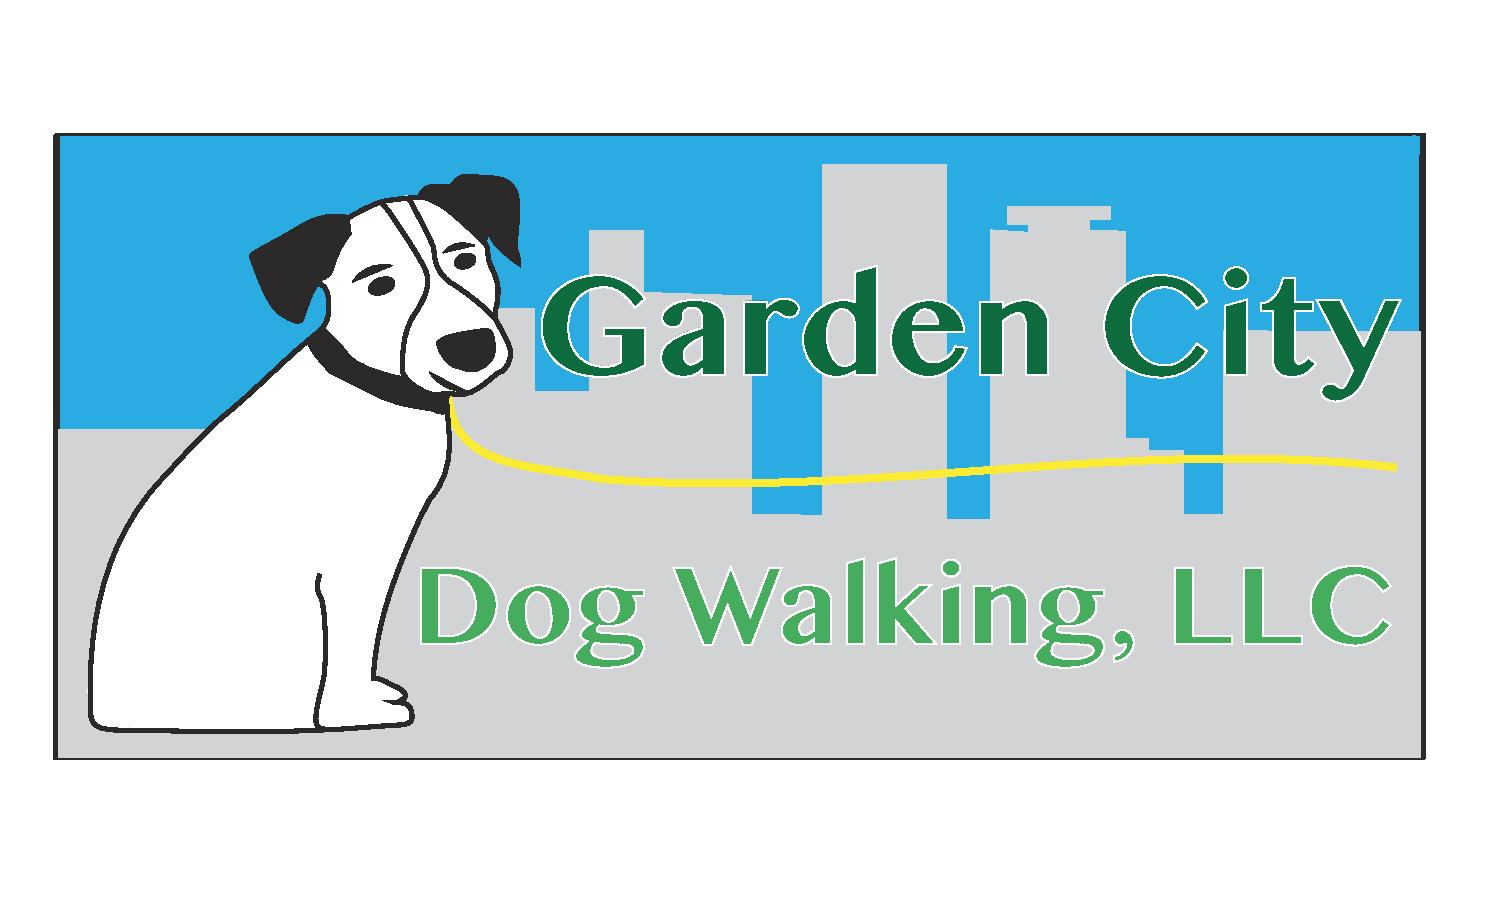 Garden City Dog Walking, LLC - Professional Dog Walking and Pet Sitting Services